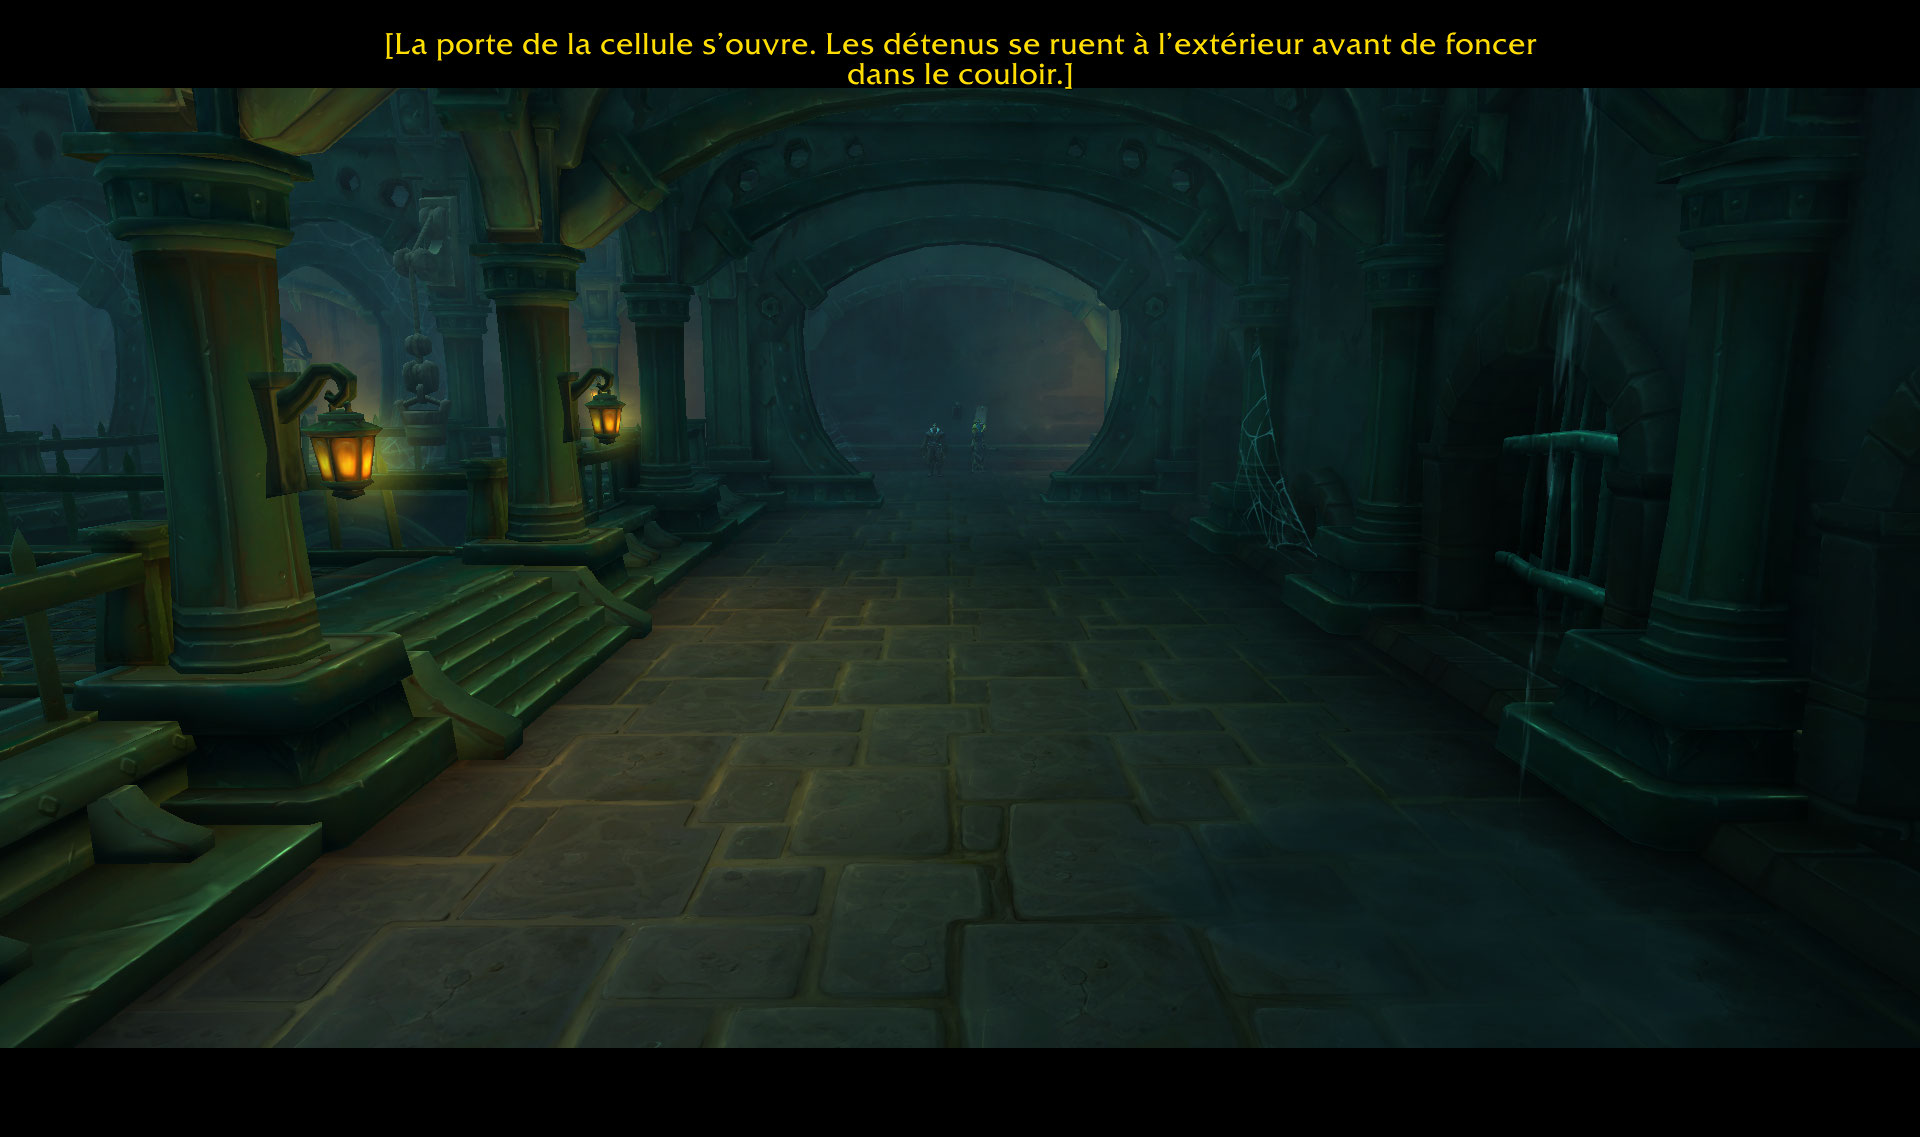 Screenshot du scénario d'introduction de l'Alliance dans World of Warcraft: Battle for Azeroth.